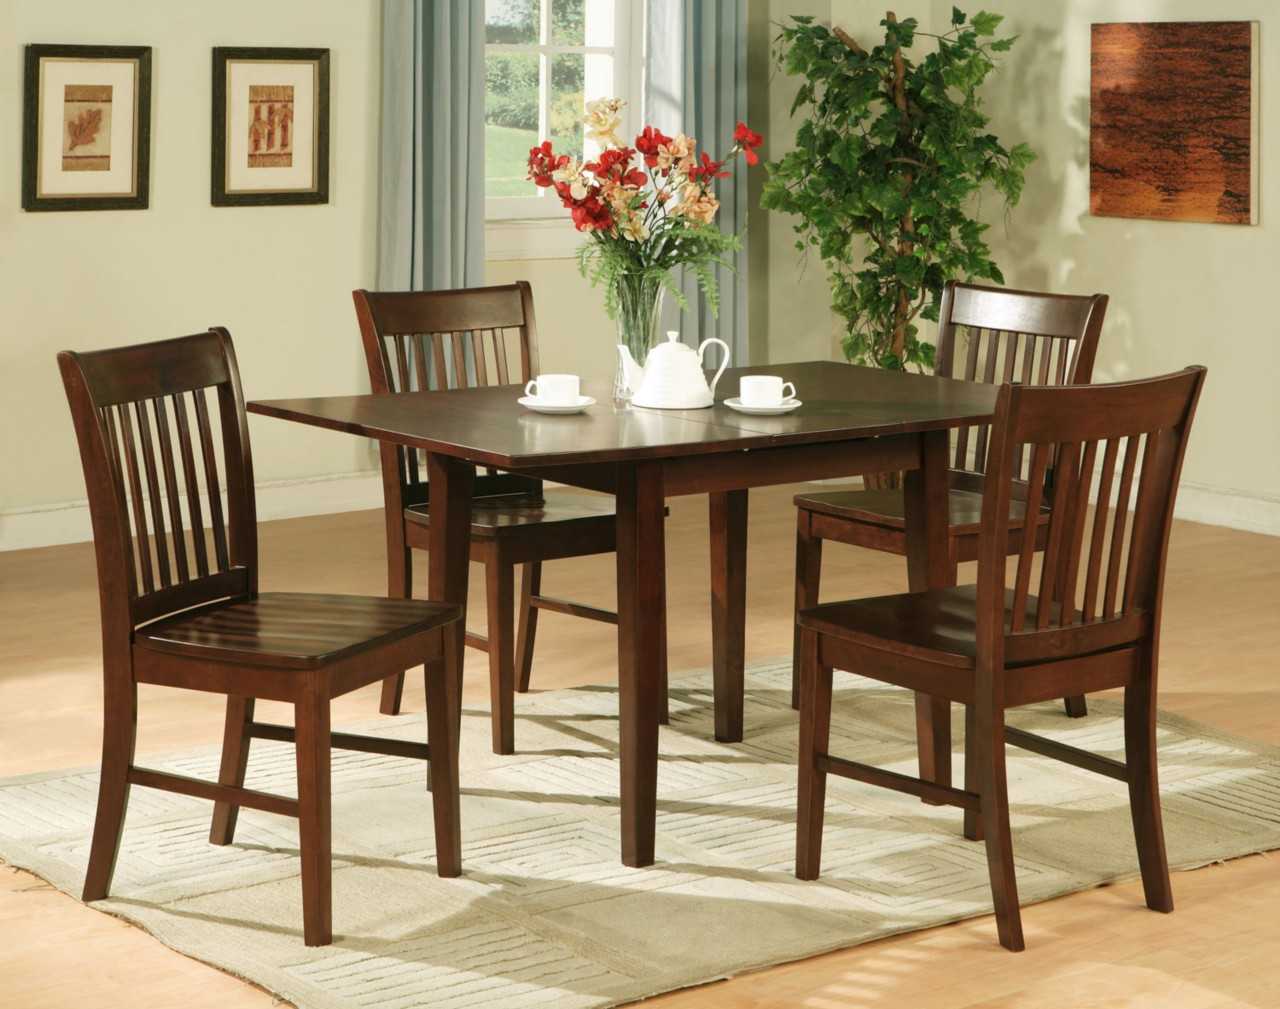 5pc rectangular kitchen dinette table 4 chairs mahogany ebay On kitchen table furniture